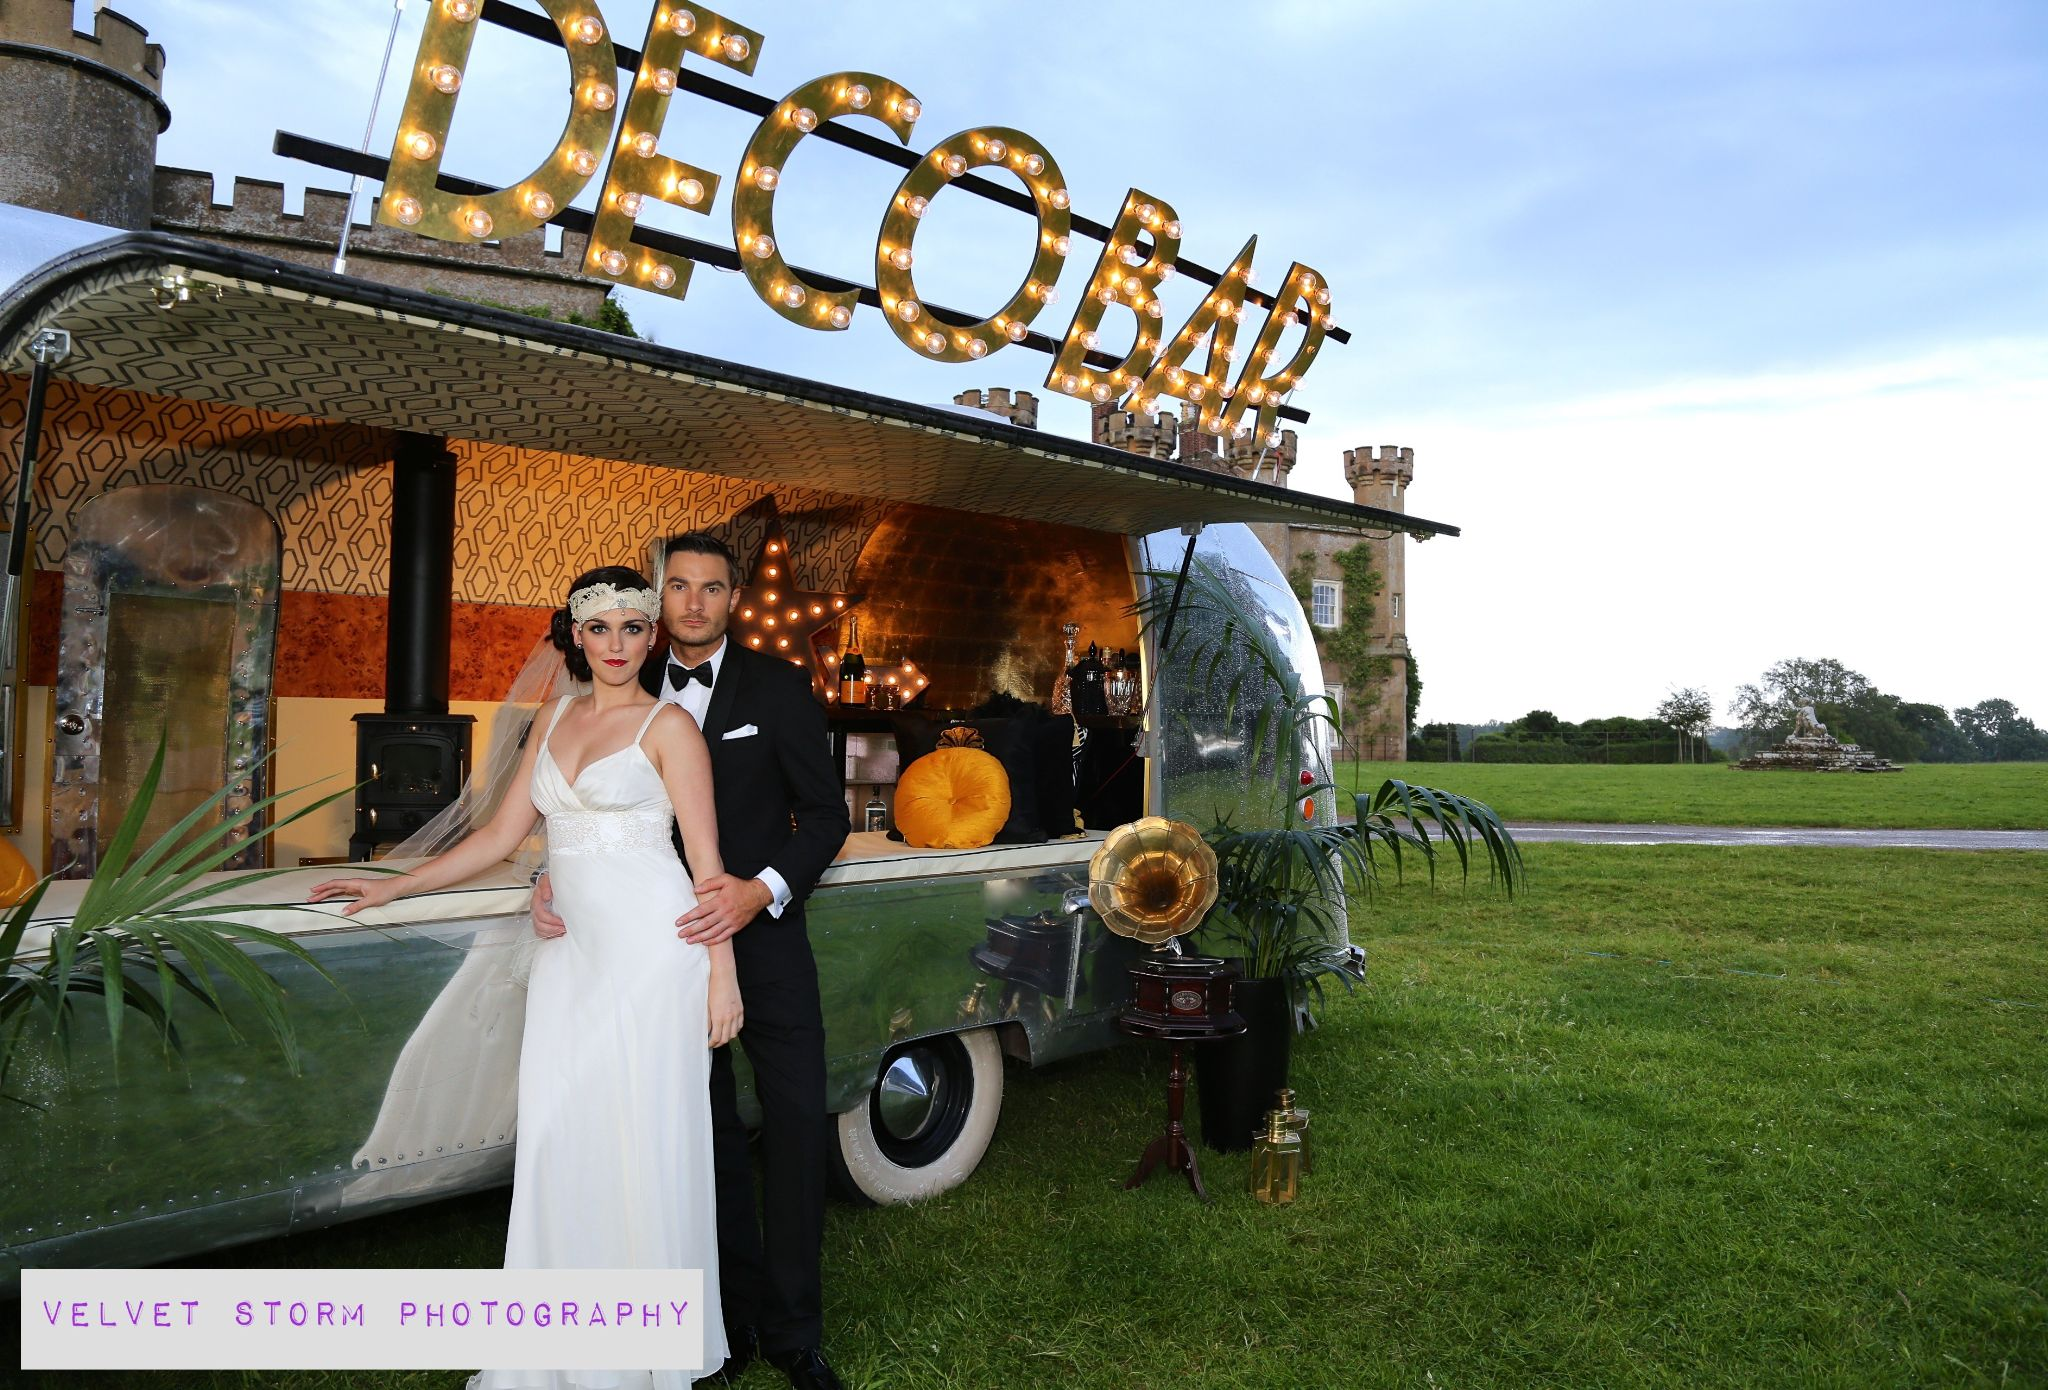 1920s Themed Photo shoot - Wedding Feature  by velvet storm photography